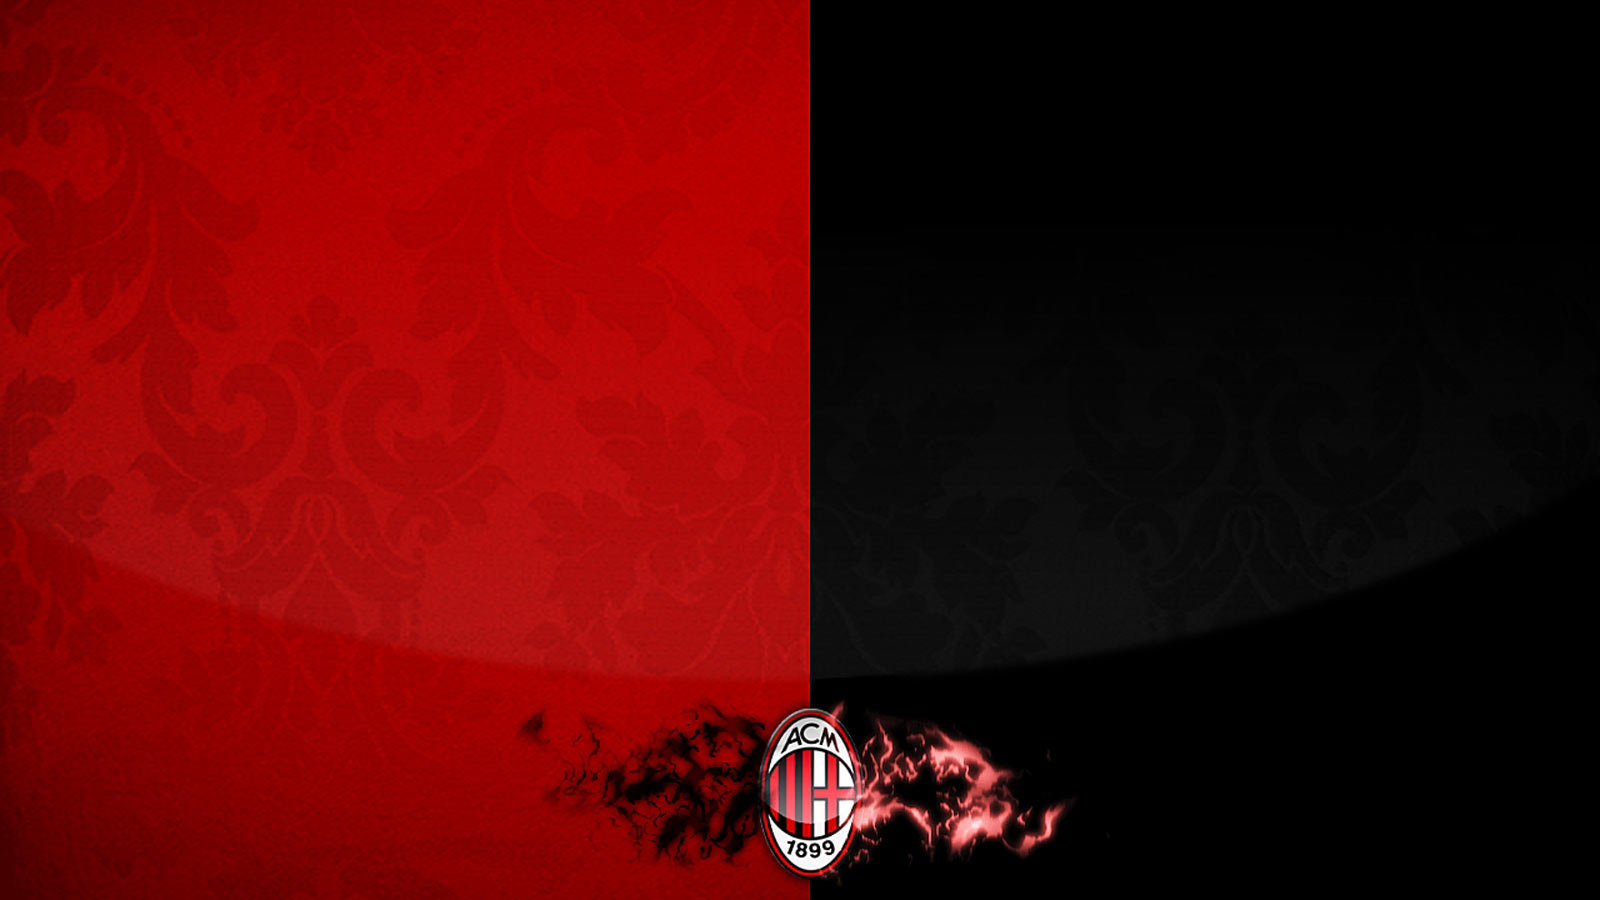 Ac Milan Wallpaper 25972 Hd Wallpapers in Football   Imagescicom 1600x900